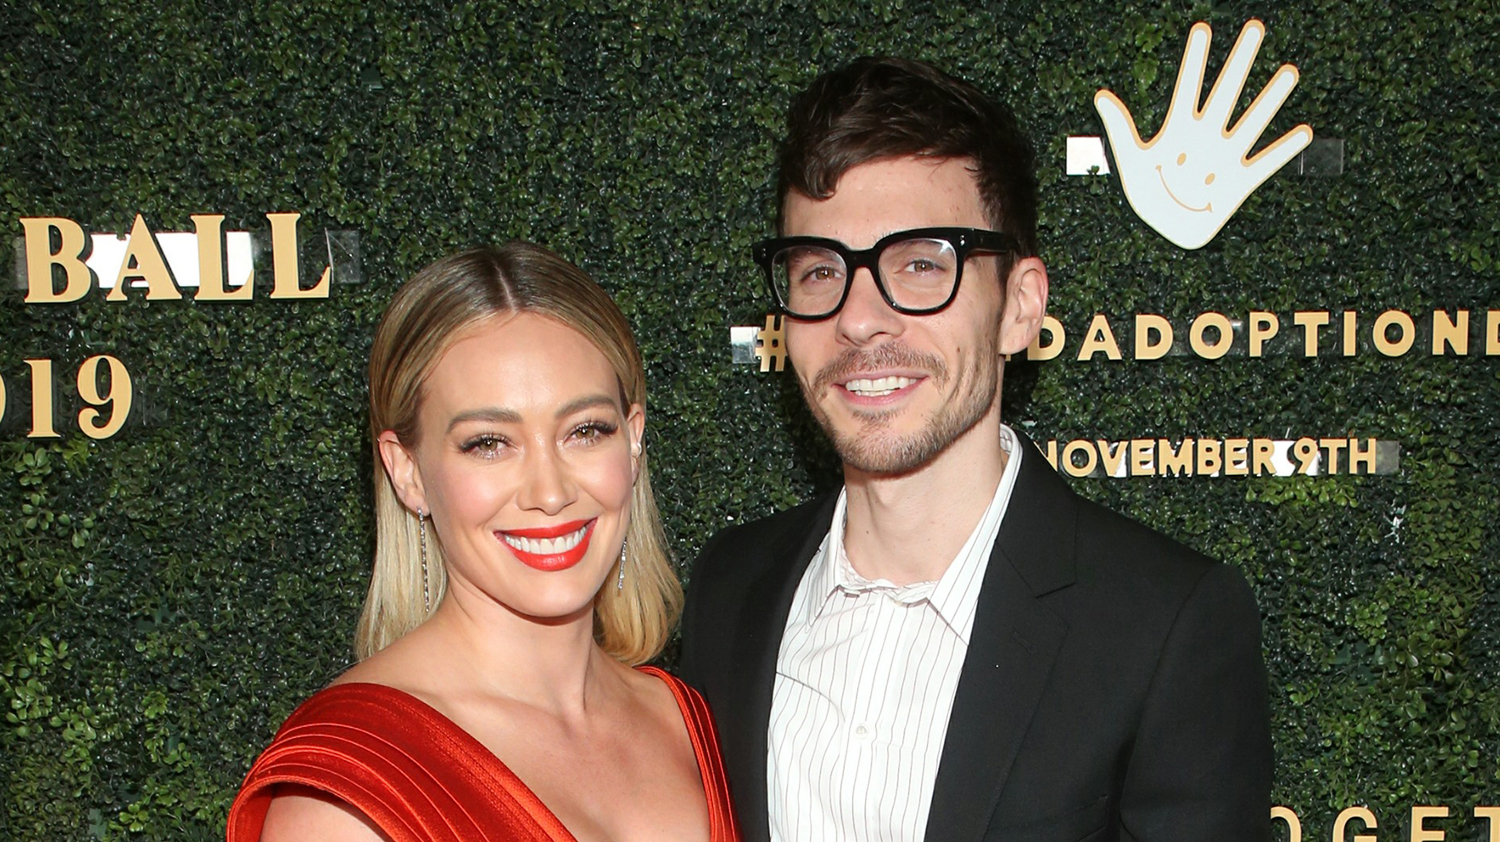 Hilary Duff Shares Wedding Photo with Matthew Koma for the first Time!